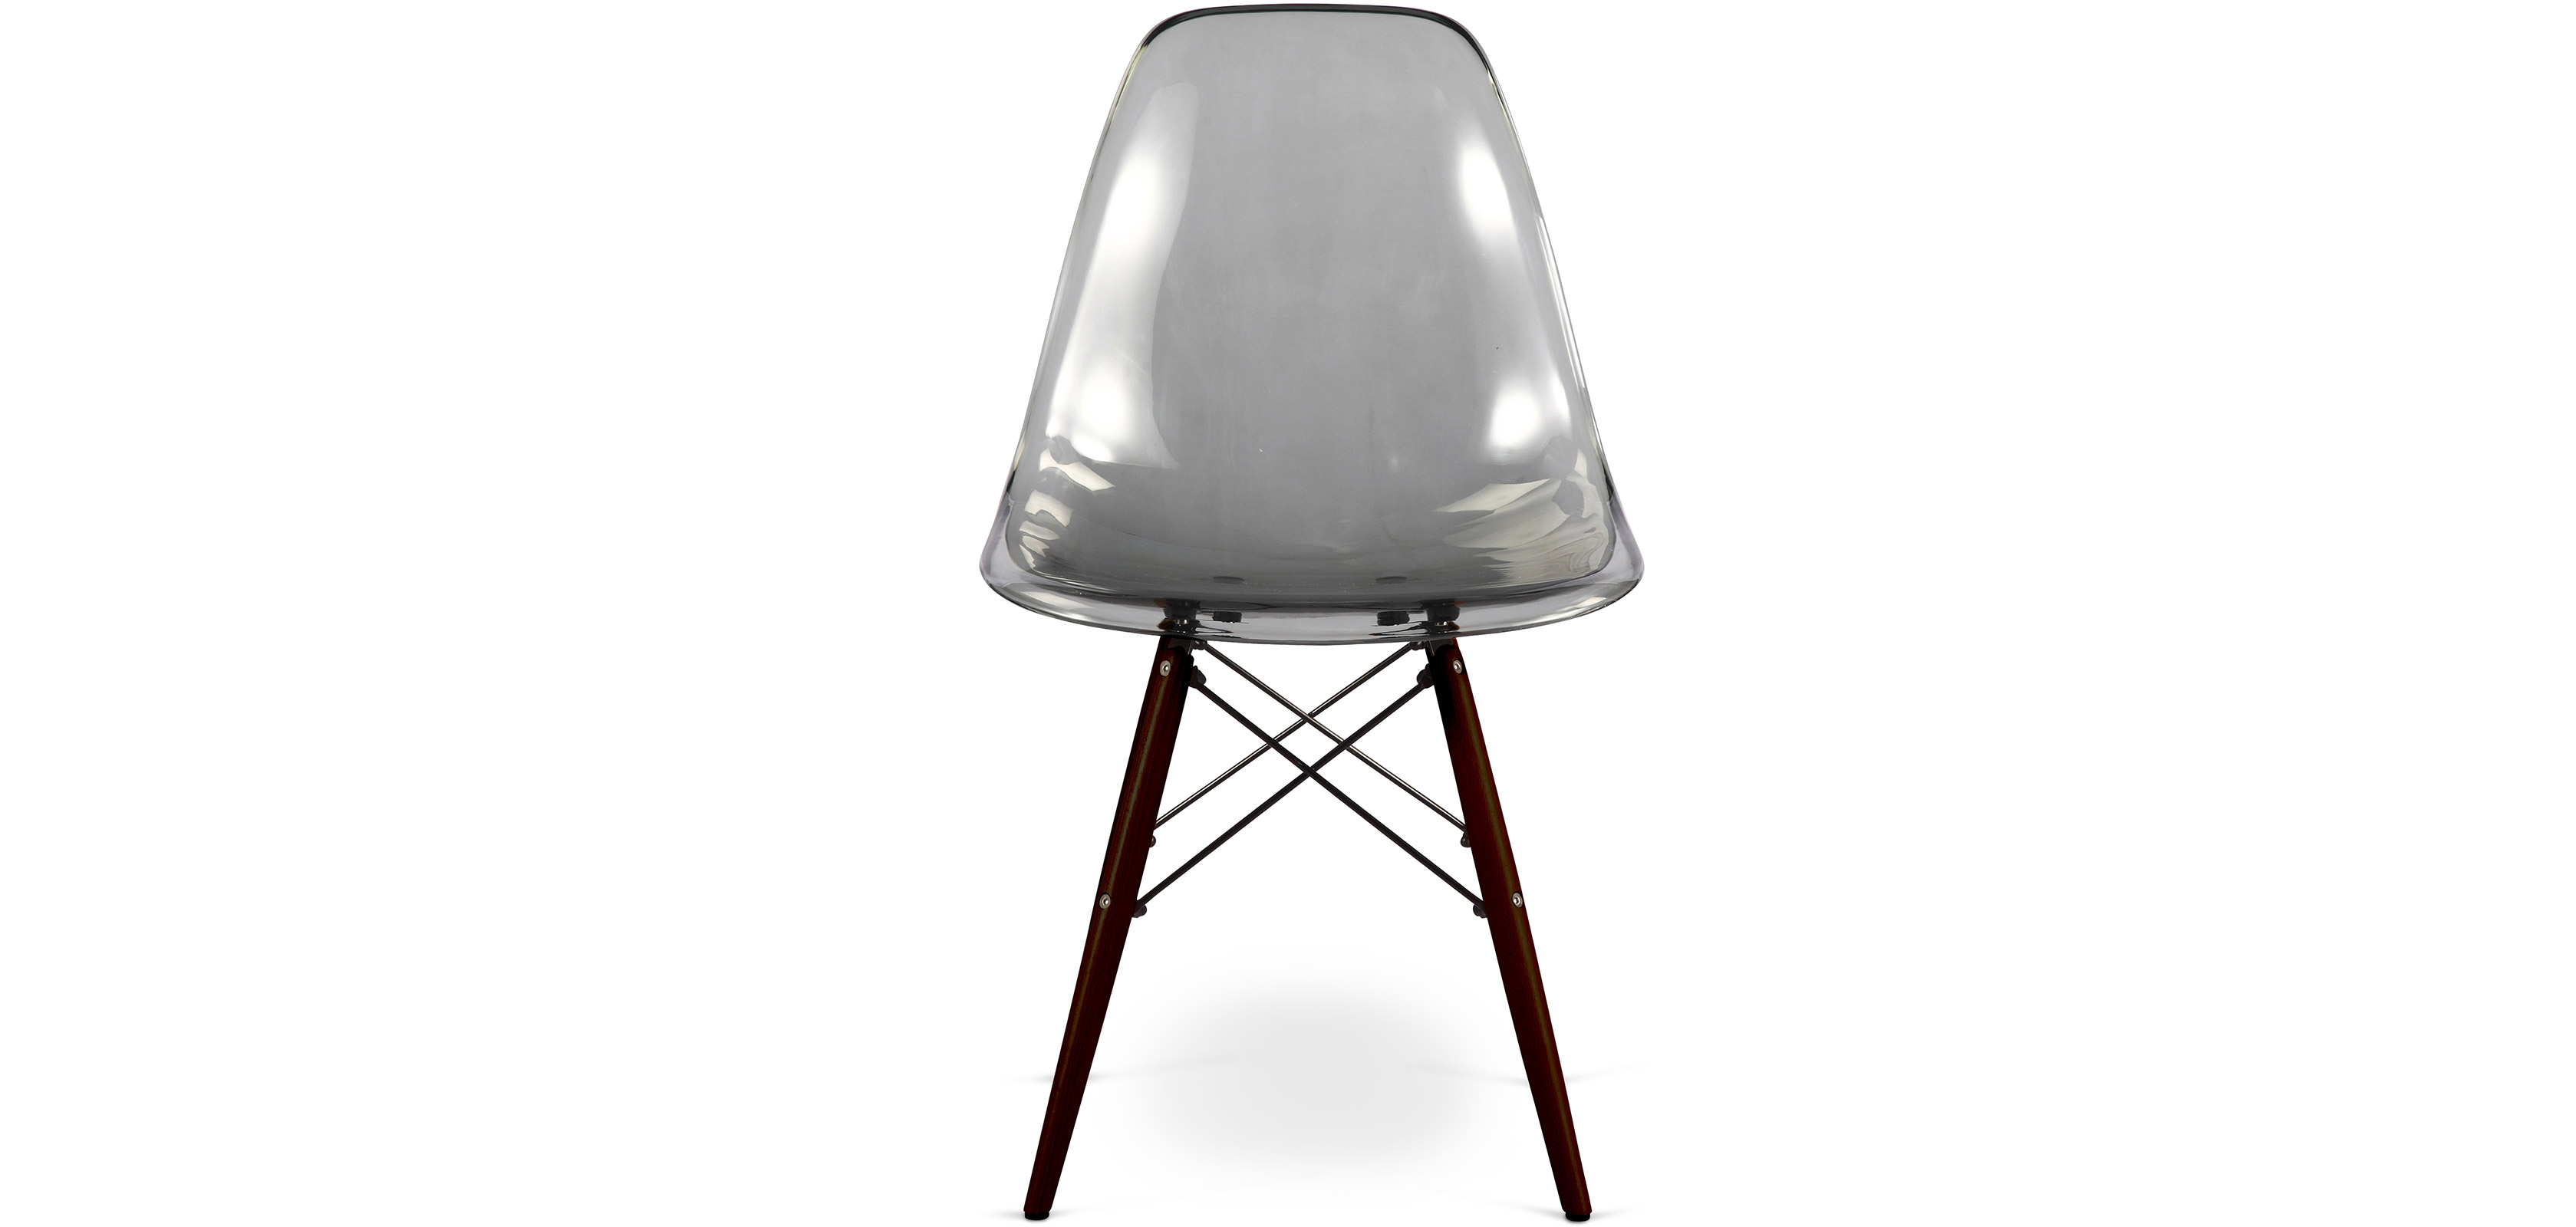 Dark legs Geneva Chair Polycarbonate Dining chairs